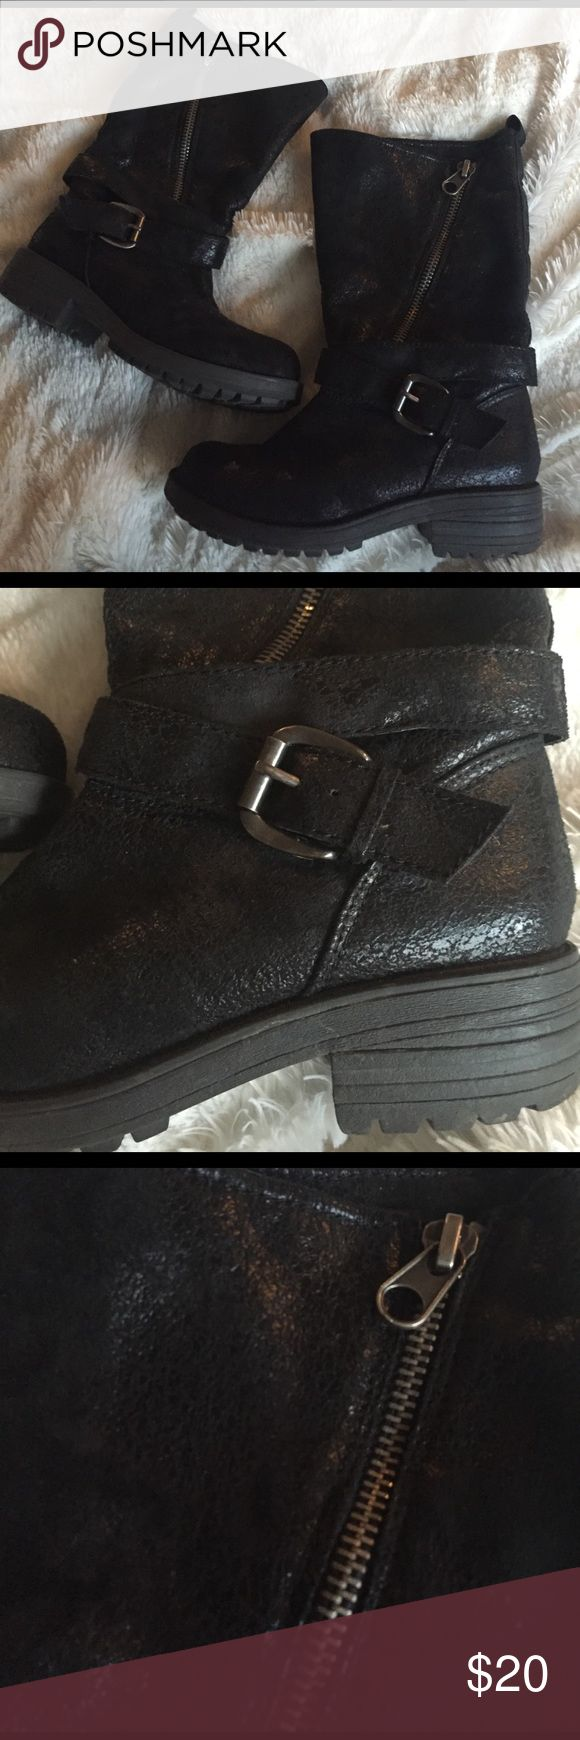 Big Buddha Fleece Lined Mid Calf Boots Super cute and comfy with fleece on the inside. Shiny cracked leather look on the outside. Cool buckle and zipper detailing. In great condition. Big Buddha Shoes Combat & Moto Boots